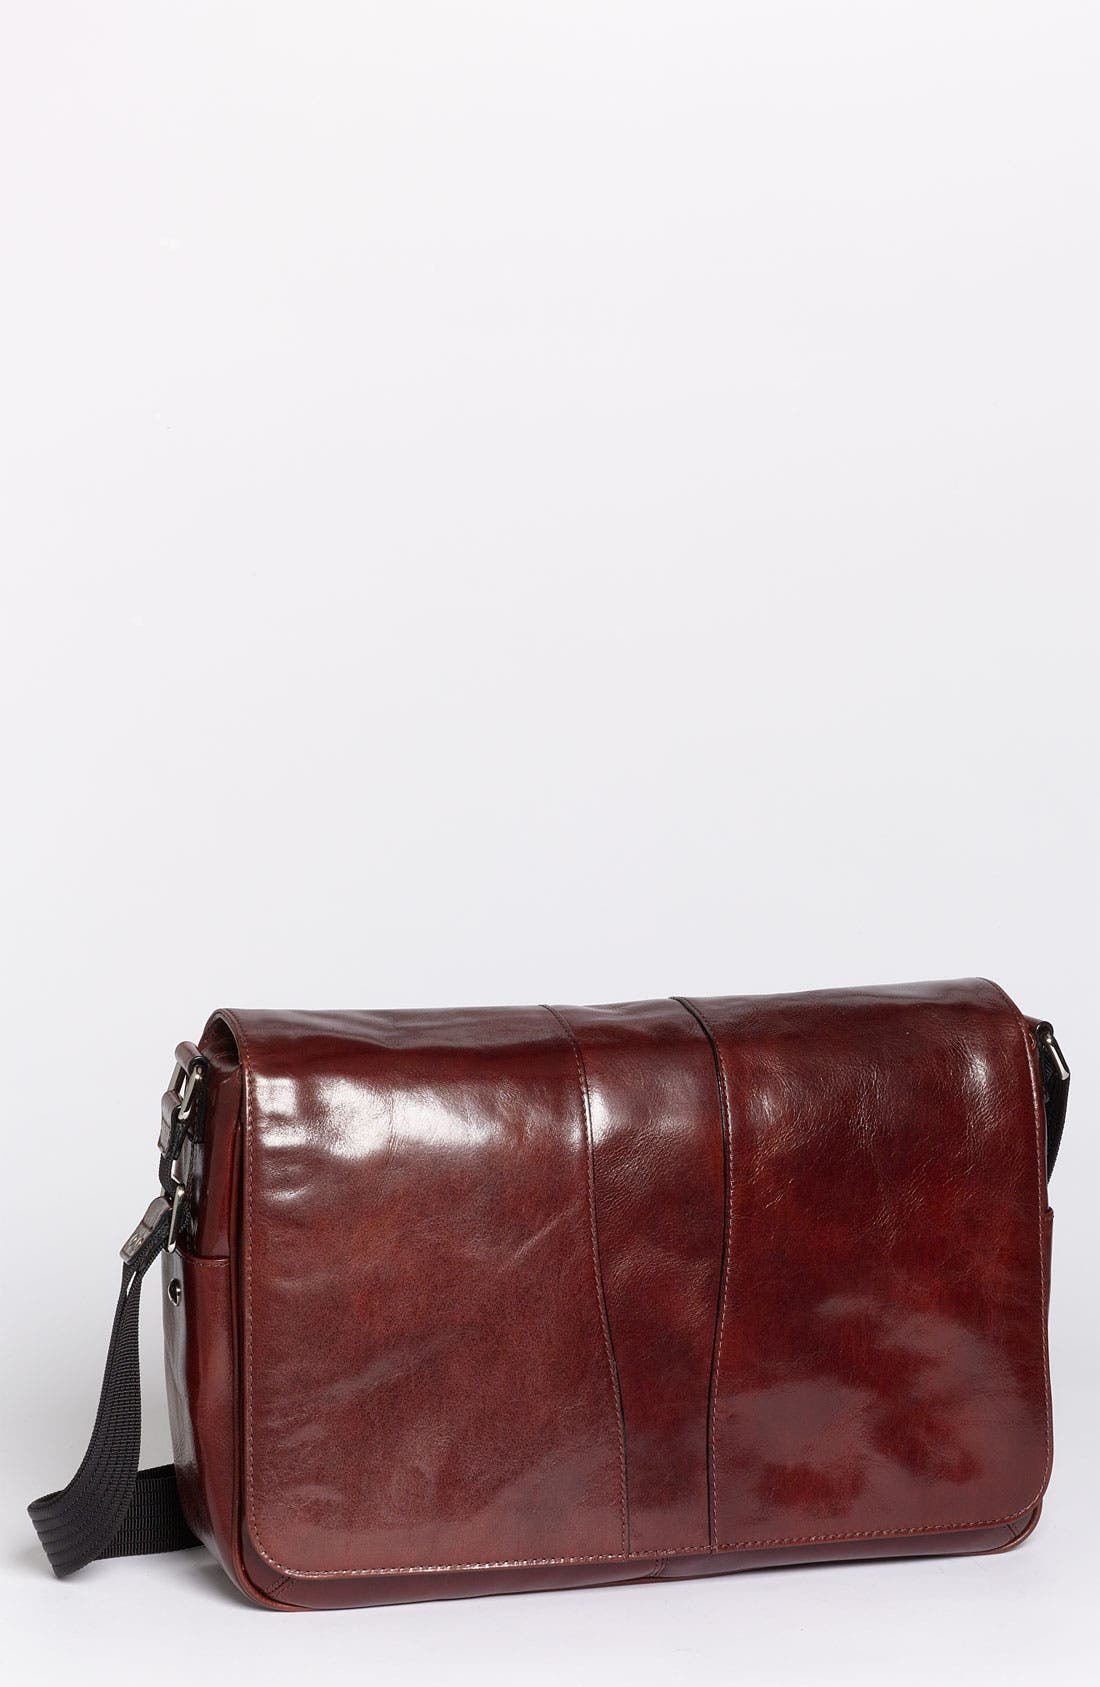 Alternate Image 1 Selected - Bosca Leather Messenger Bag